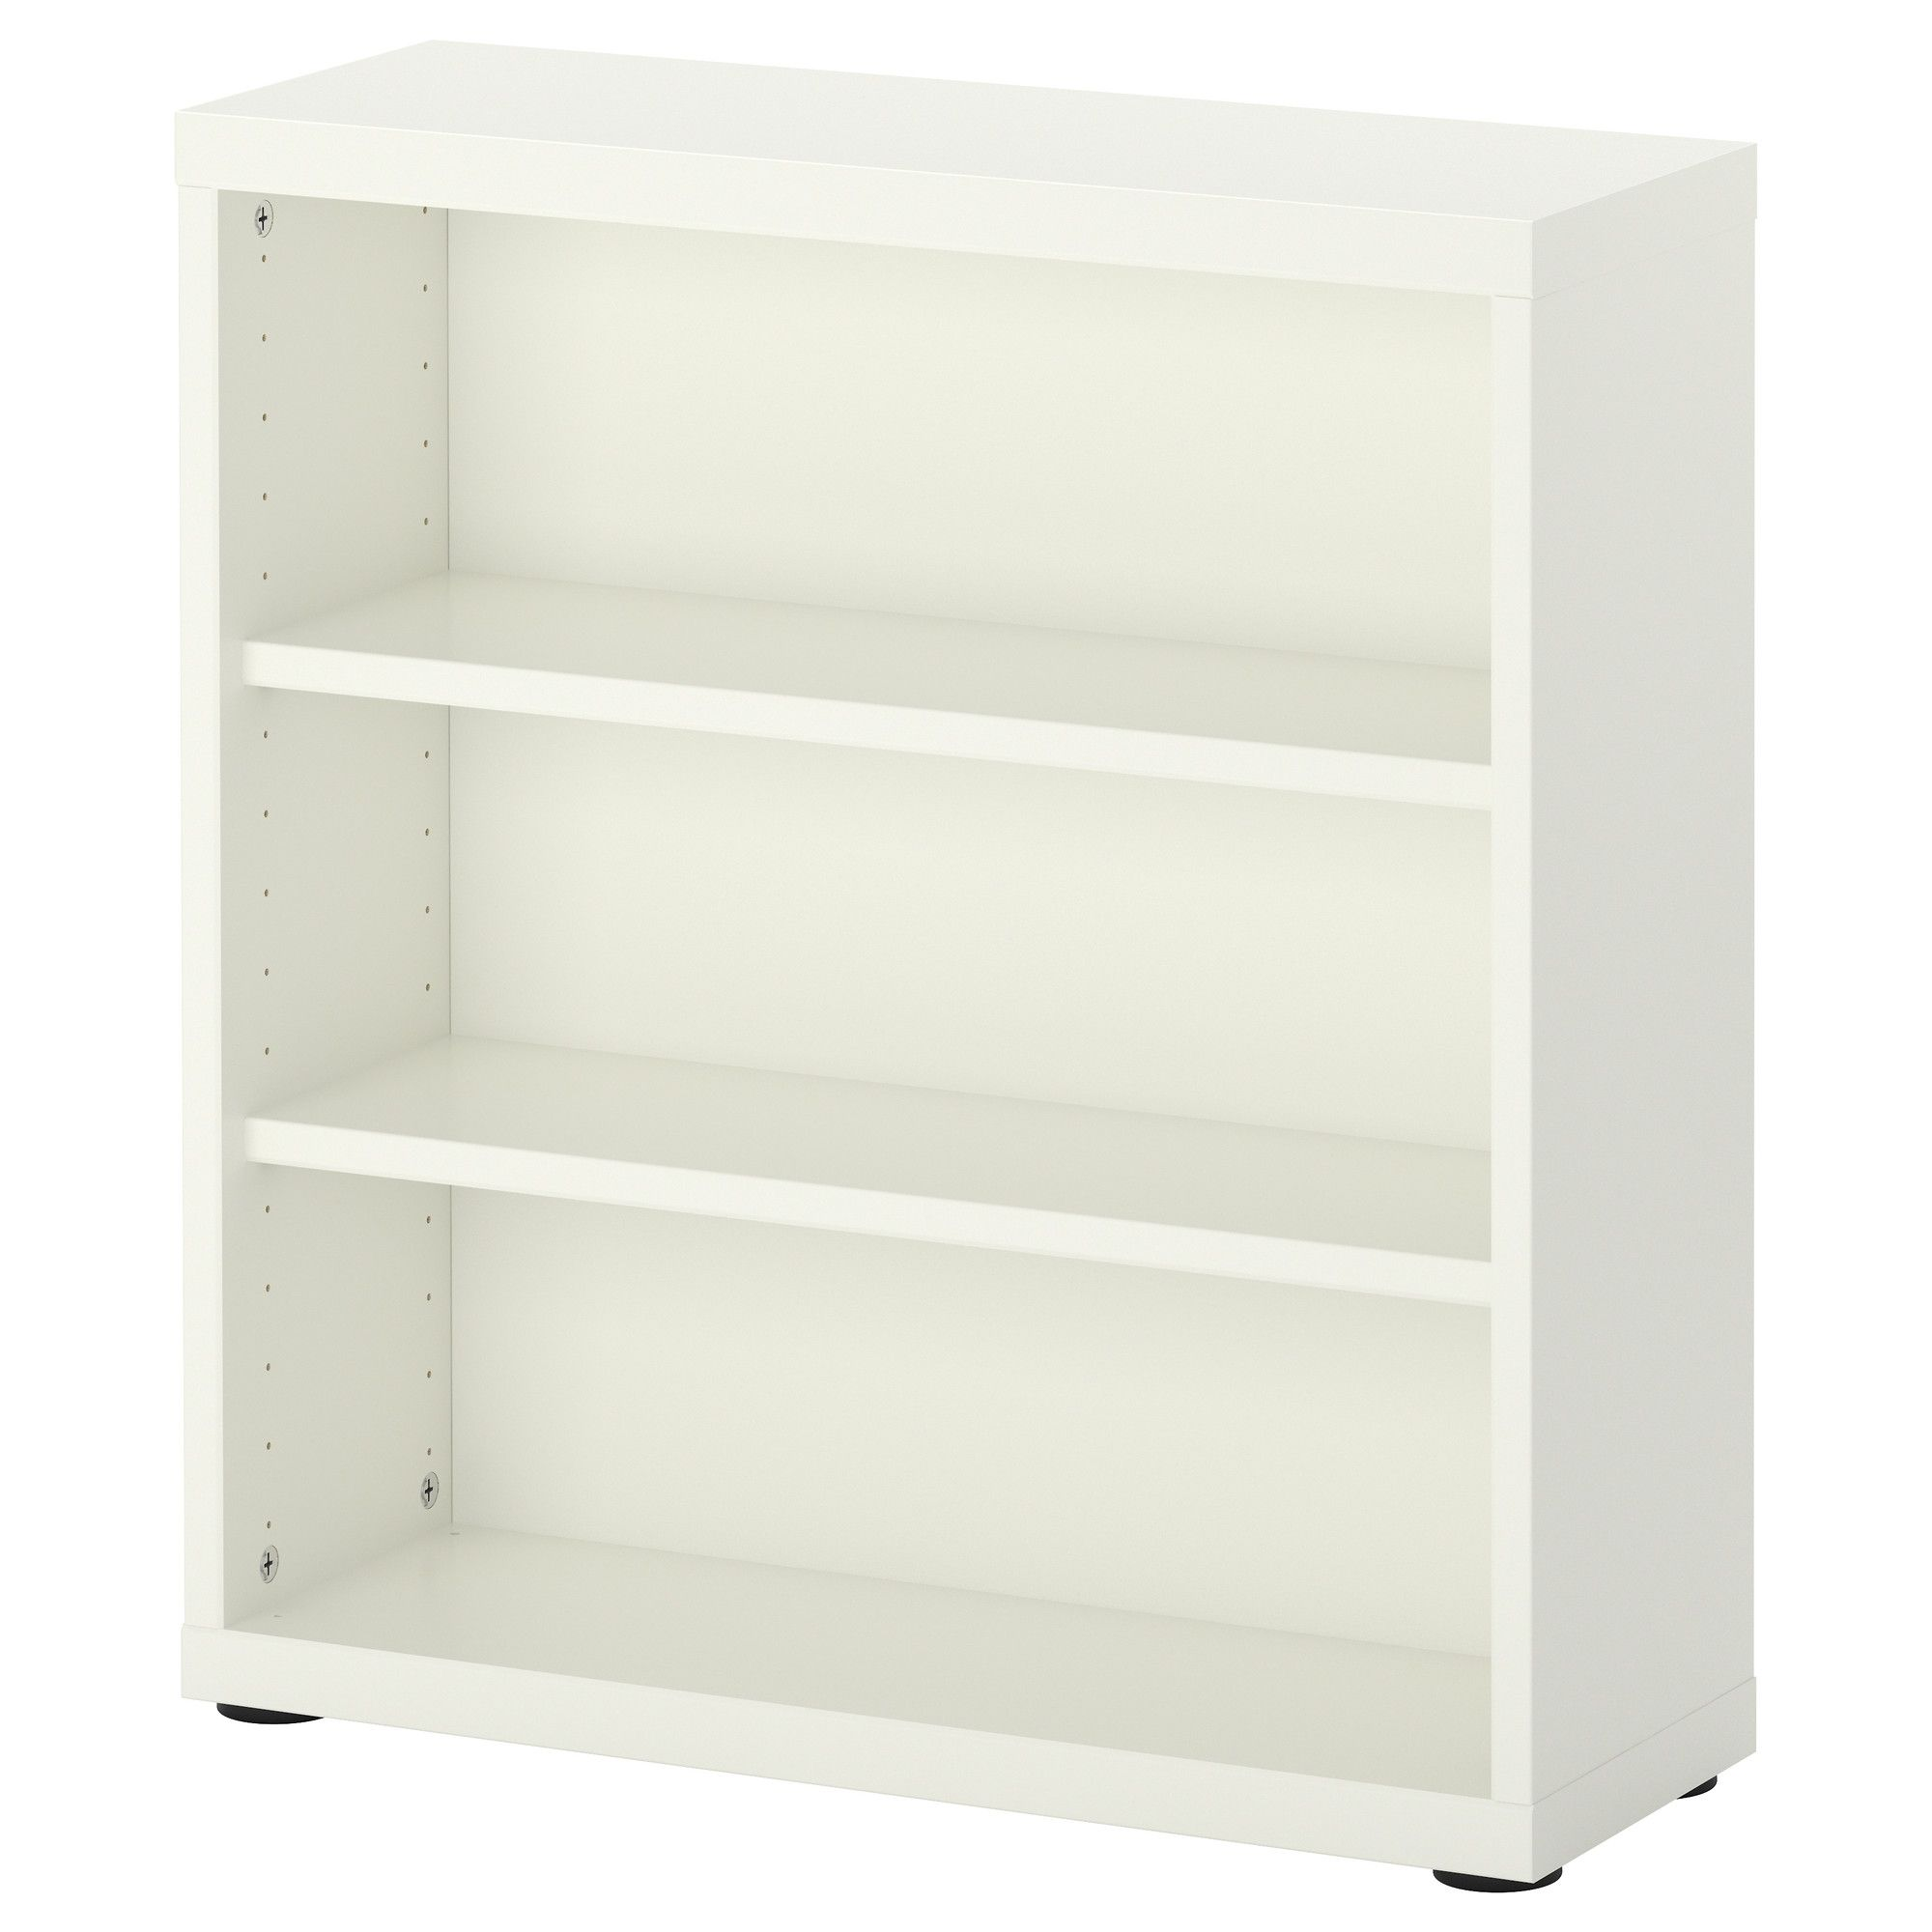 BESTÅ Shelf unit/height extension unit - white - IKEA   23 5/8x7 7/8x 25 1/4   $40   probably available at Pittsburgh